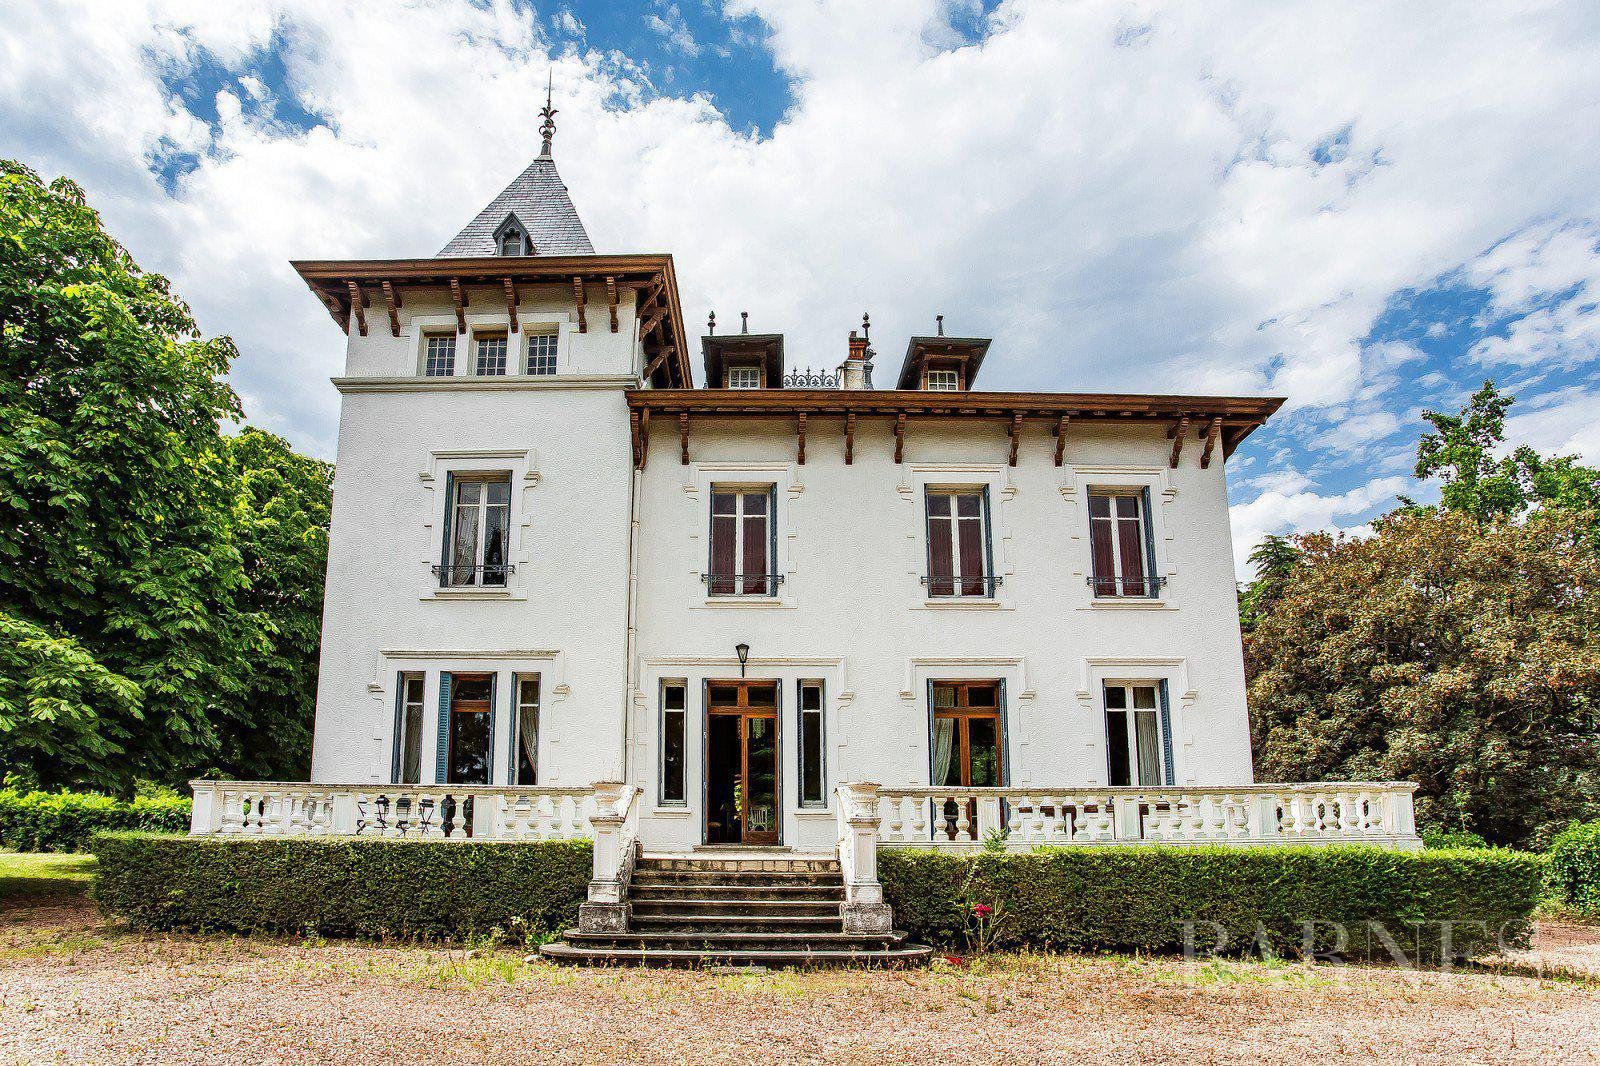 Tarare - 375 sqm house with character - 2 hectare park - 9 bedrooms